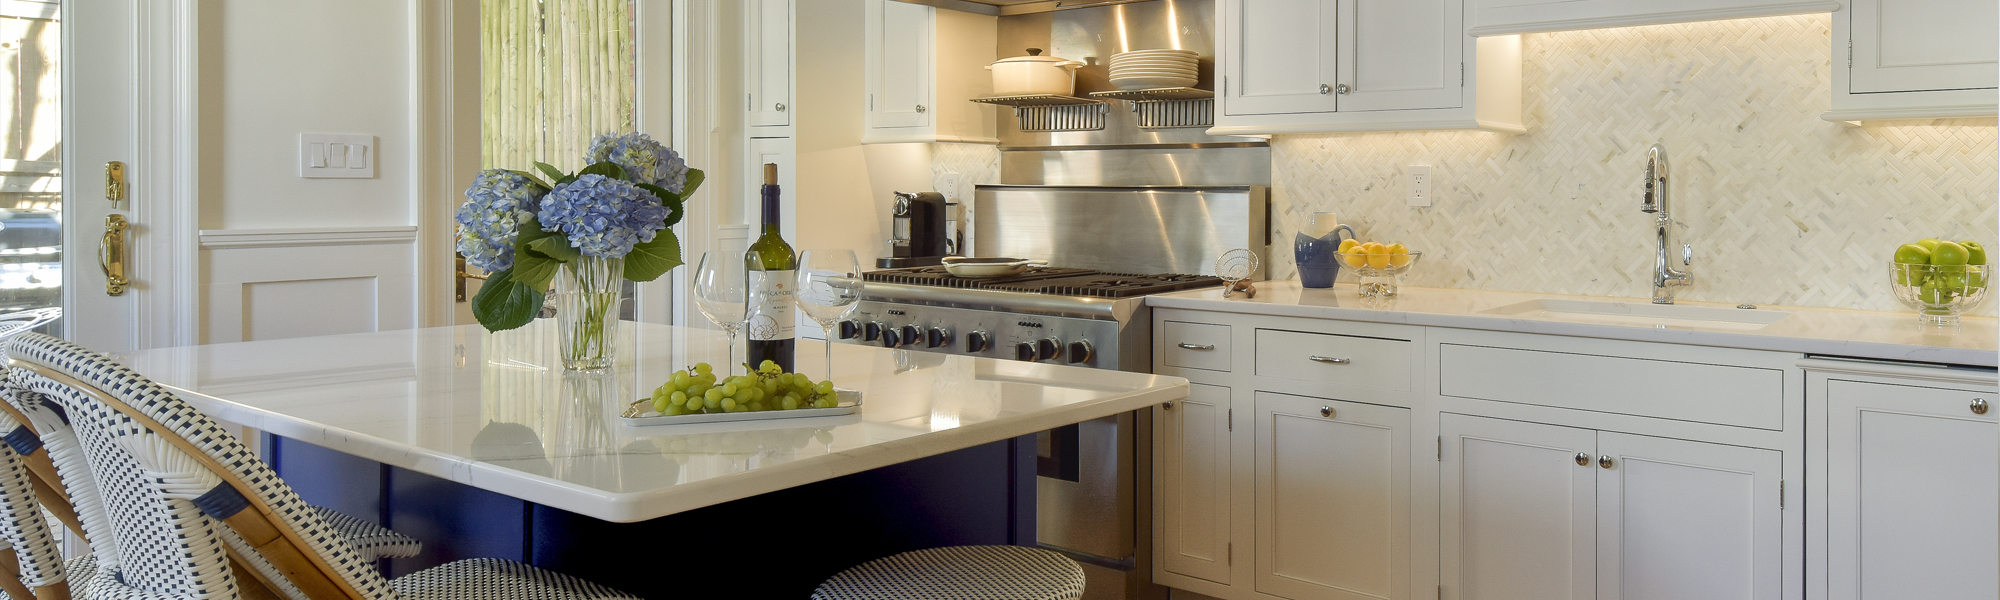 DC Rowhome Kitchen Remodel